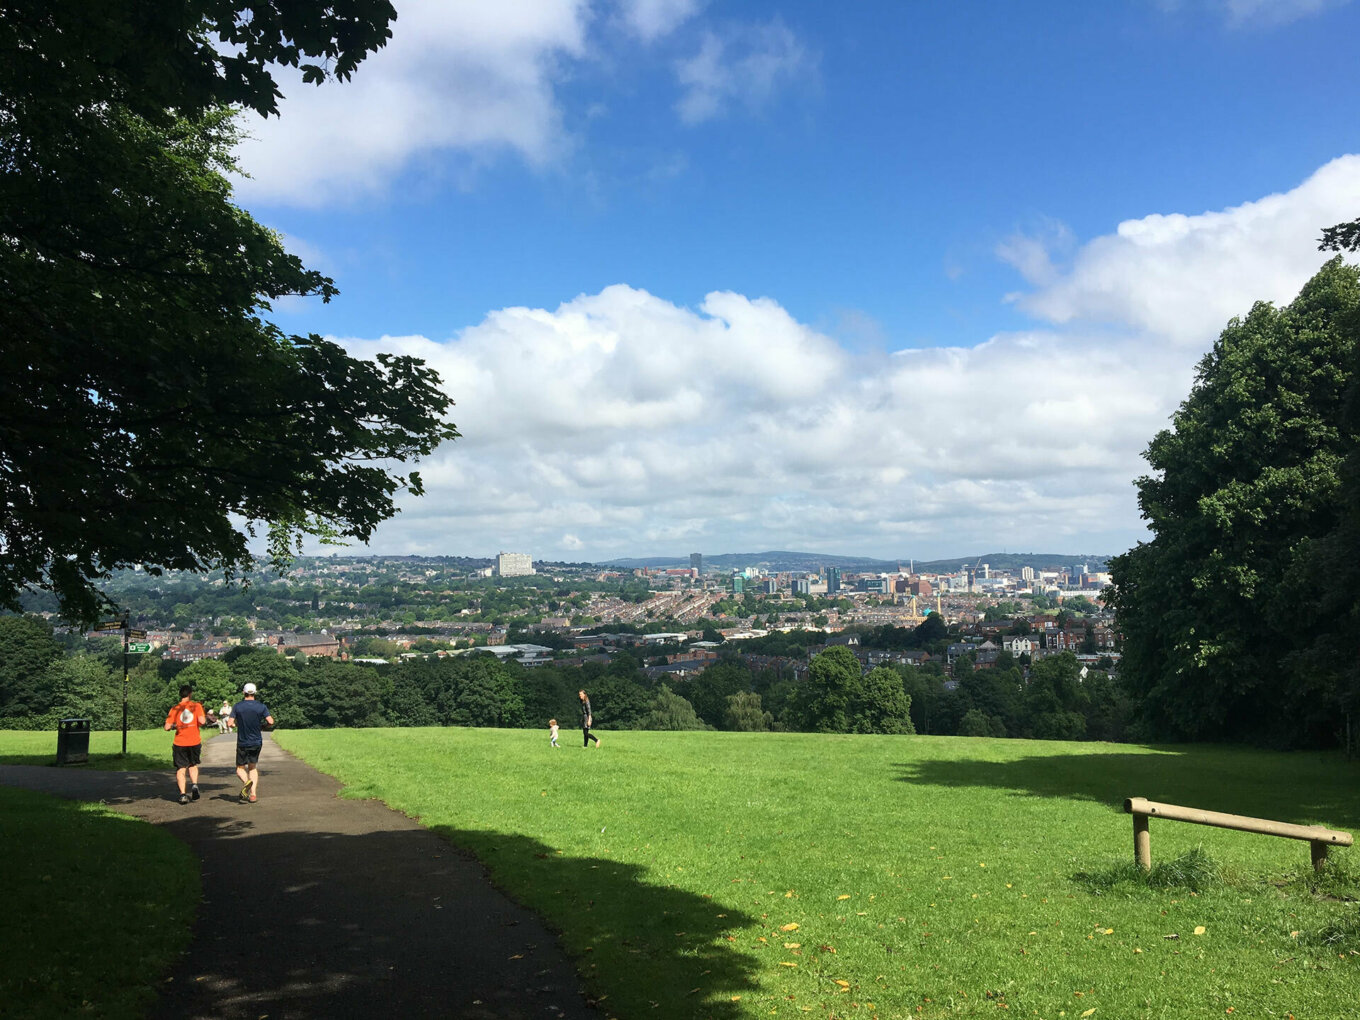 View from the top of Meersbrook Park